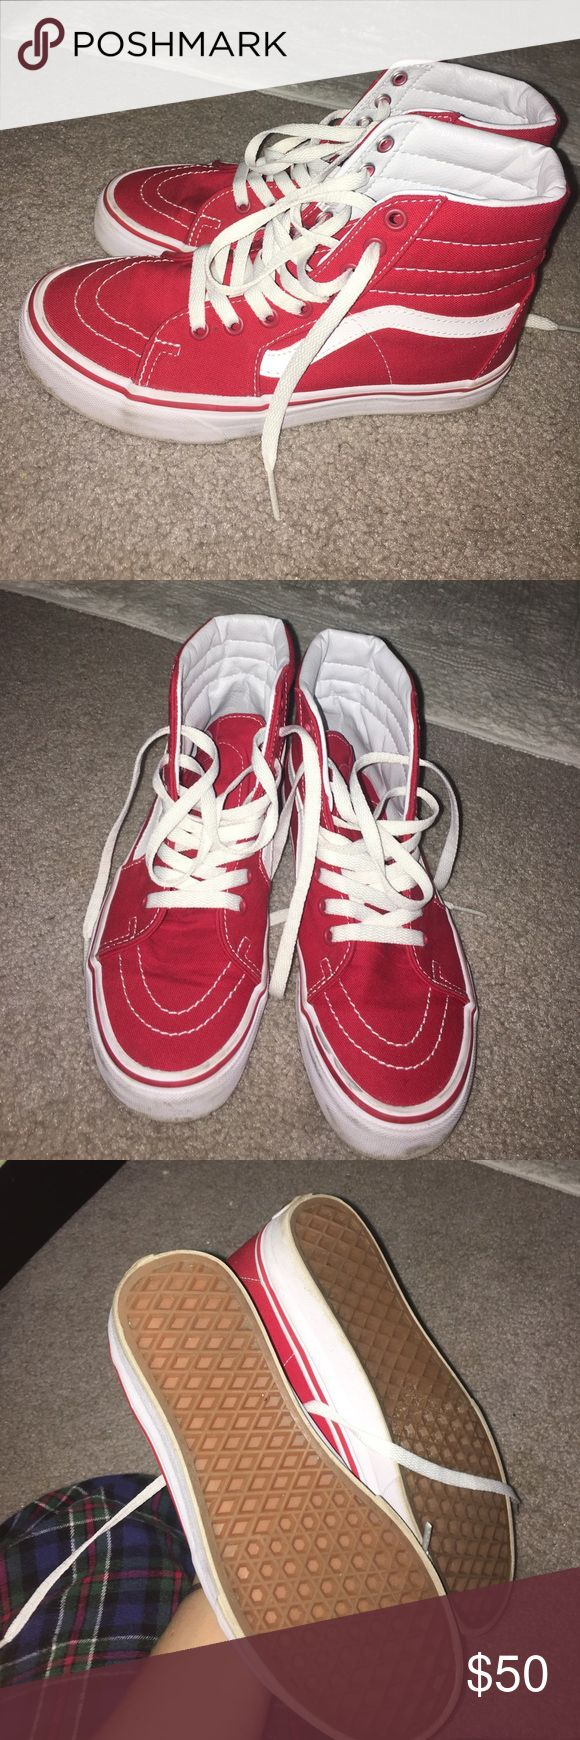 Vans skate hi's in red Worn for a few hours, almost perfect condition. Vans Shoes Sneakers